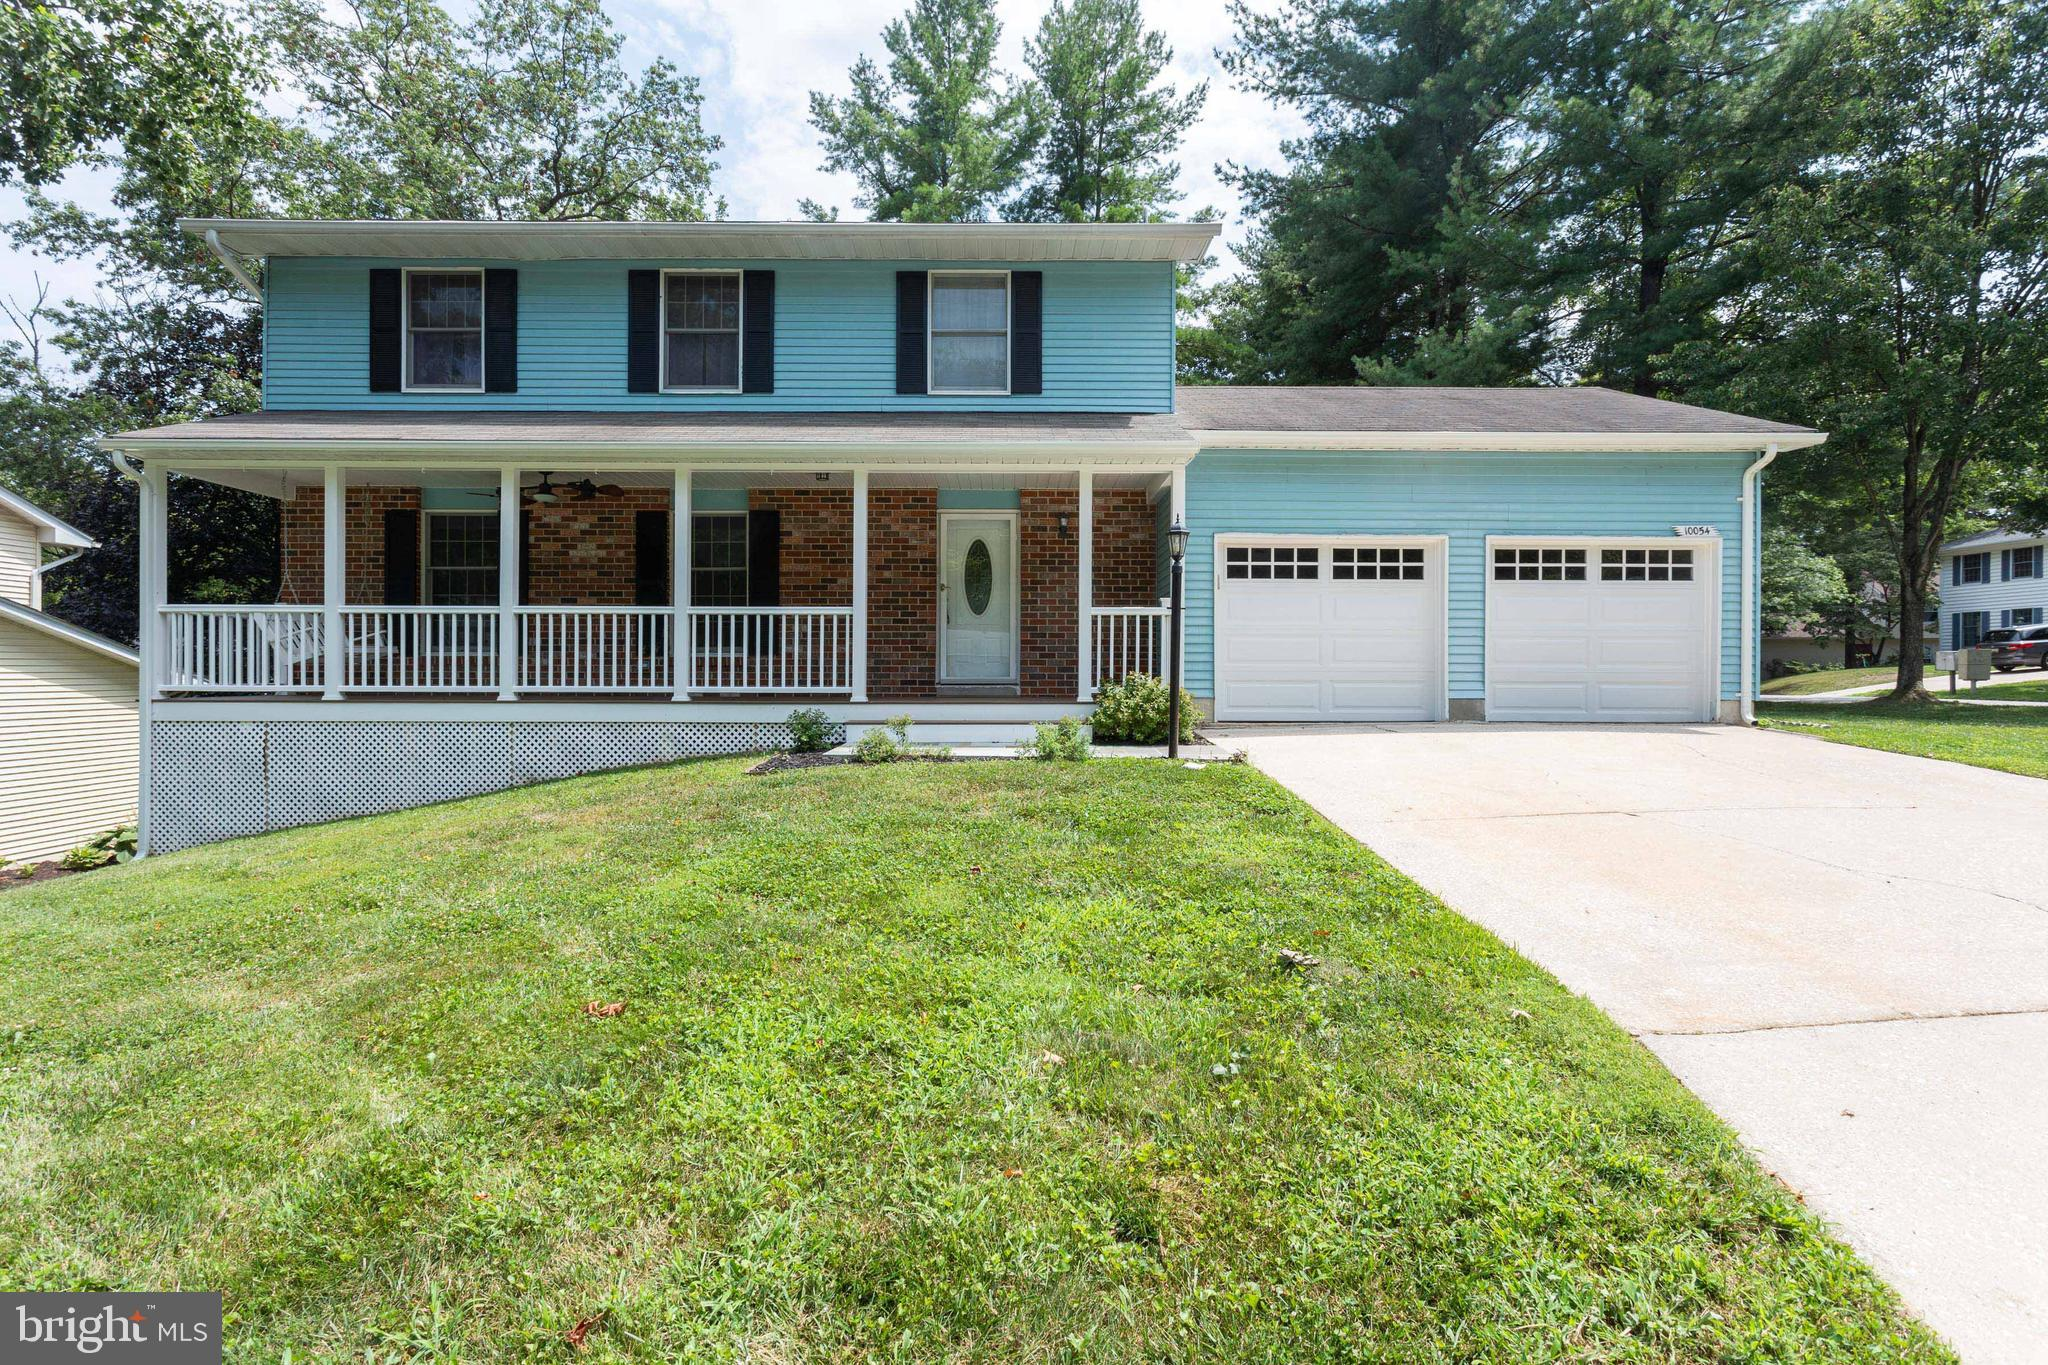 Great colonial in the Village of Kings Contrivance.  This home has 4 bedrooms, 3 full baths, and a 2